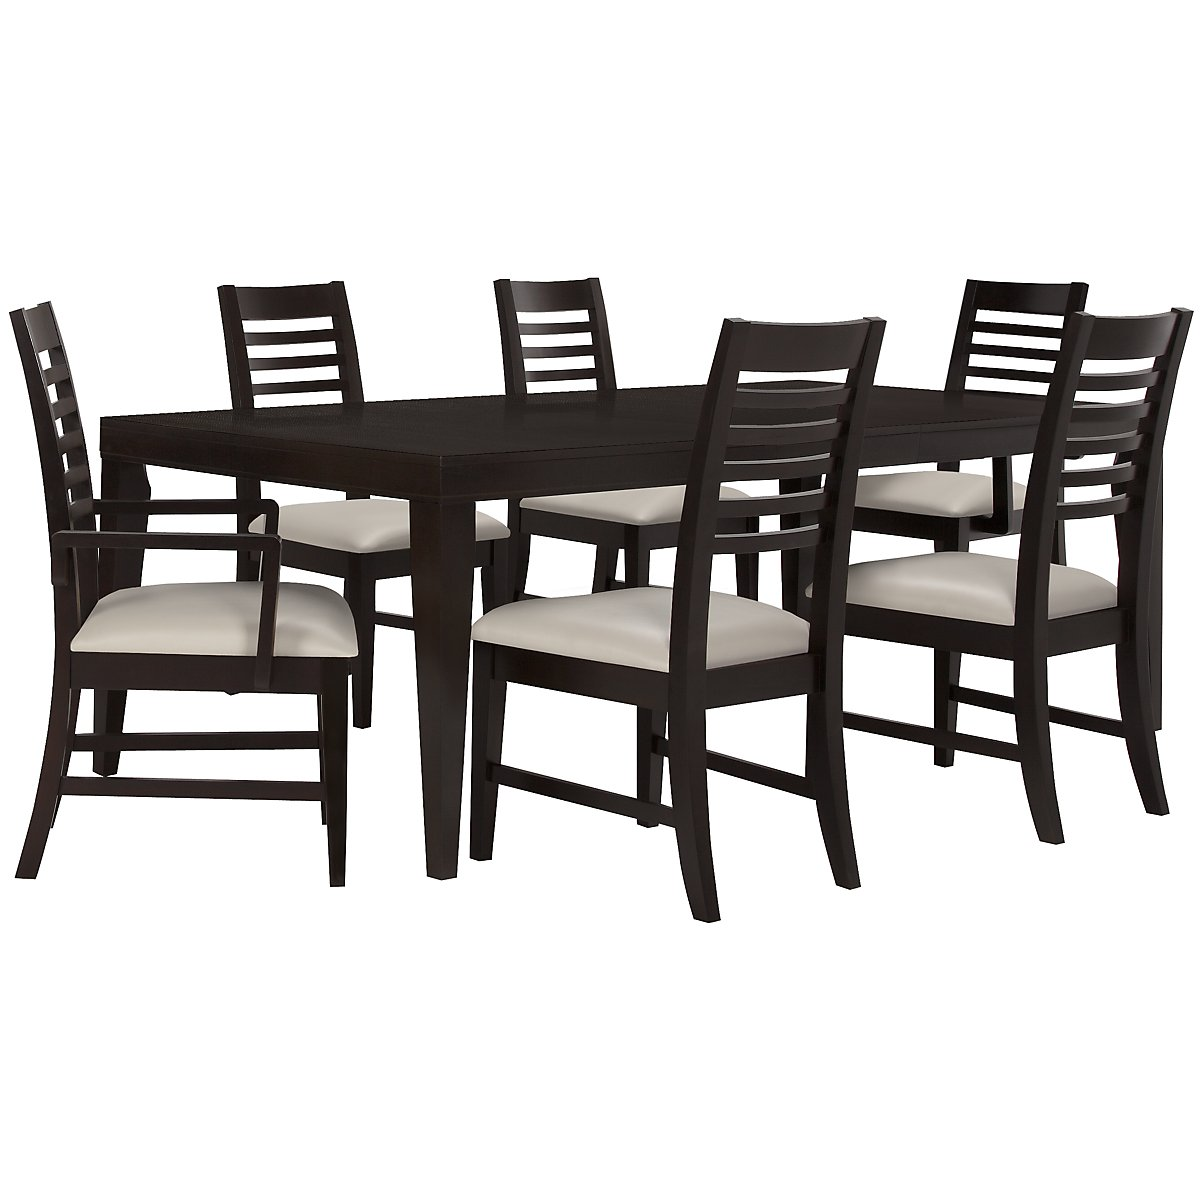 Encore2 Dark Tone Rectangular Table & 4 Slat Chairs